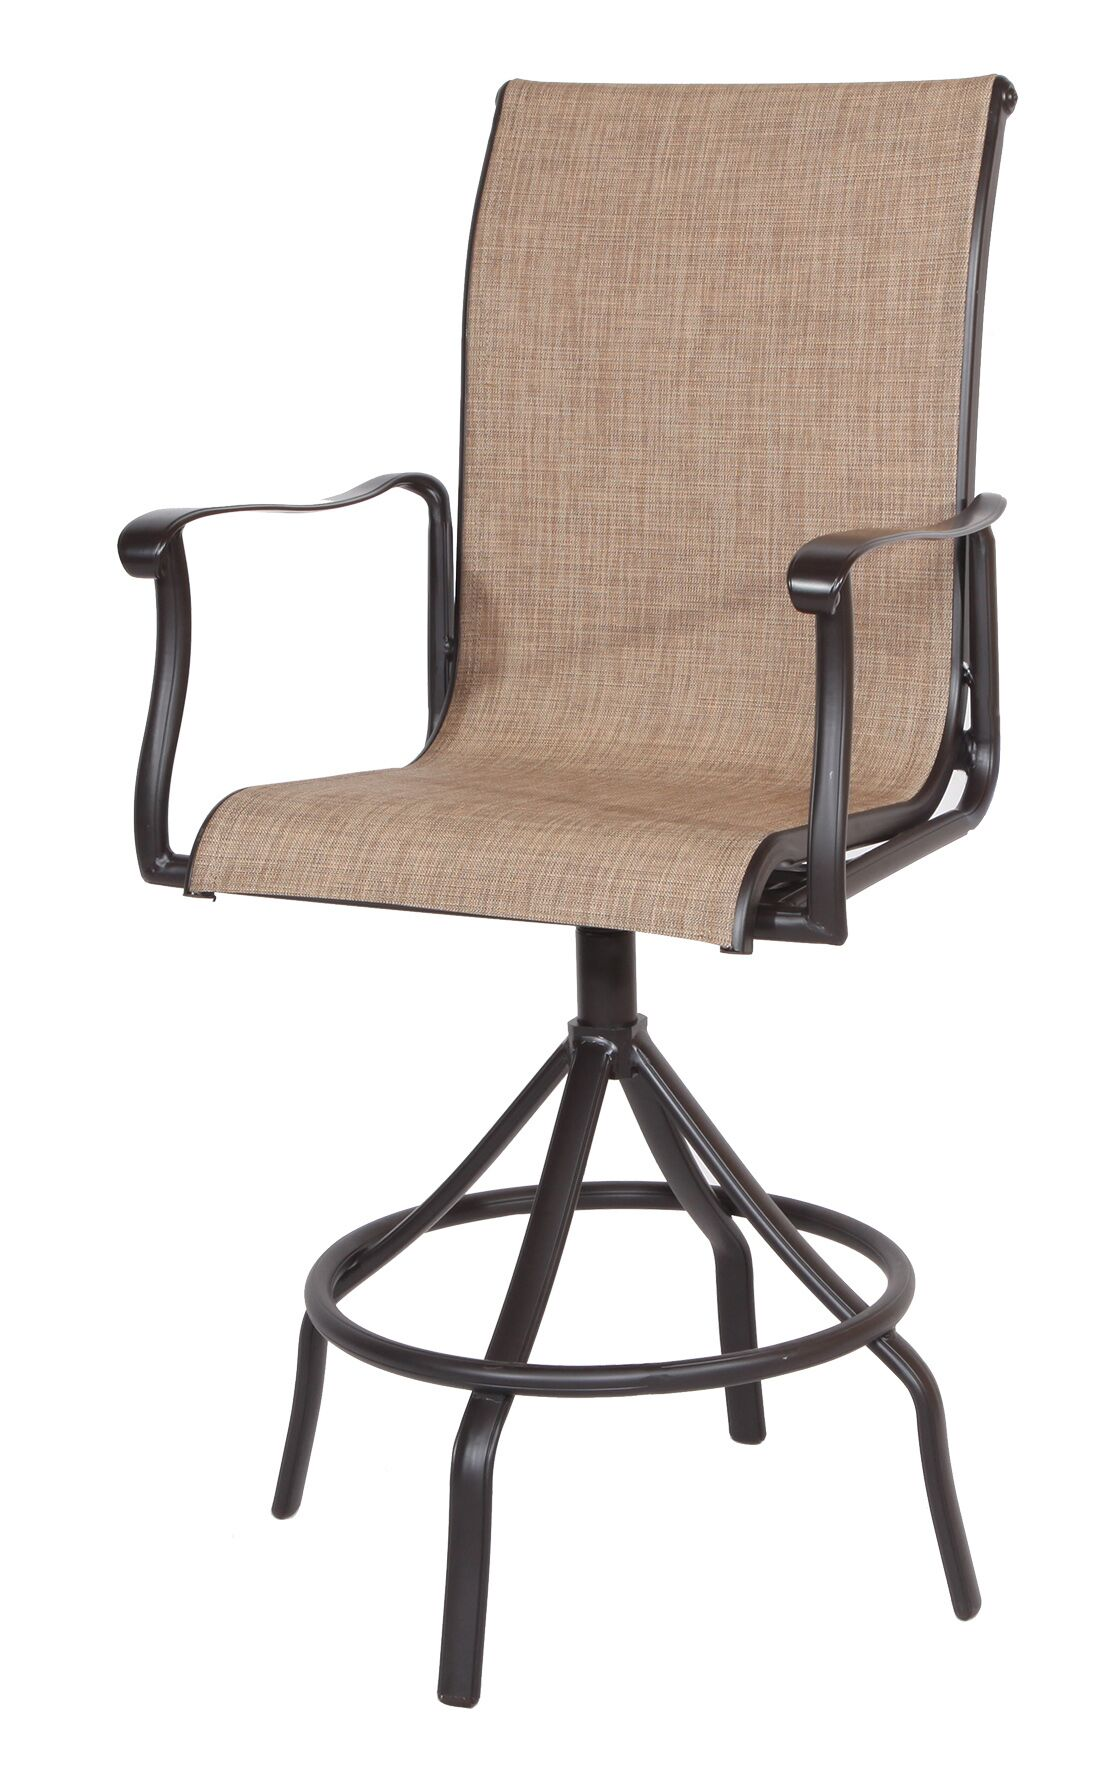 lowes camping chairs restoration hardware aviator desk chair bar sold at stores recalled due to fall